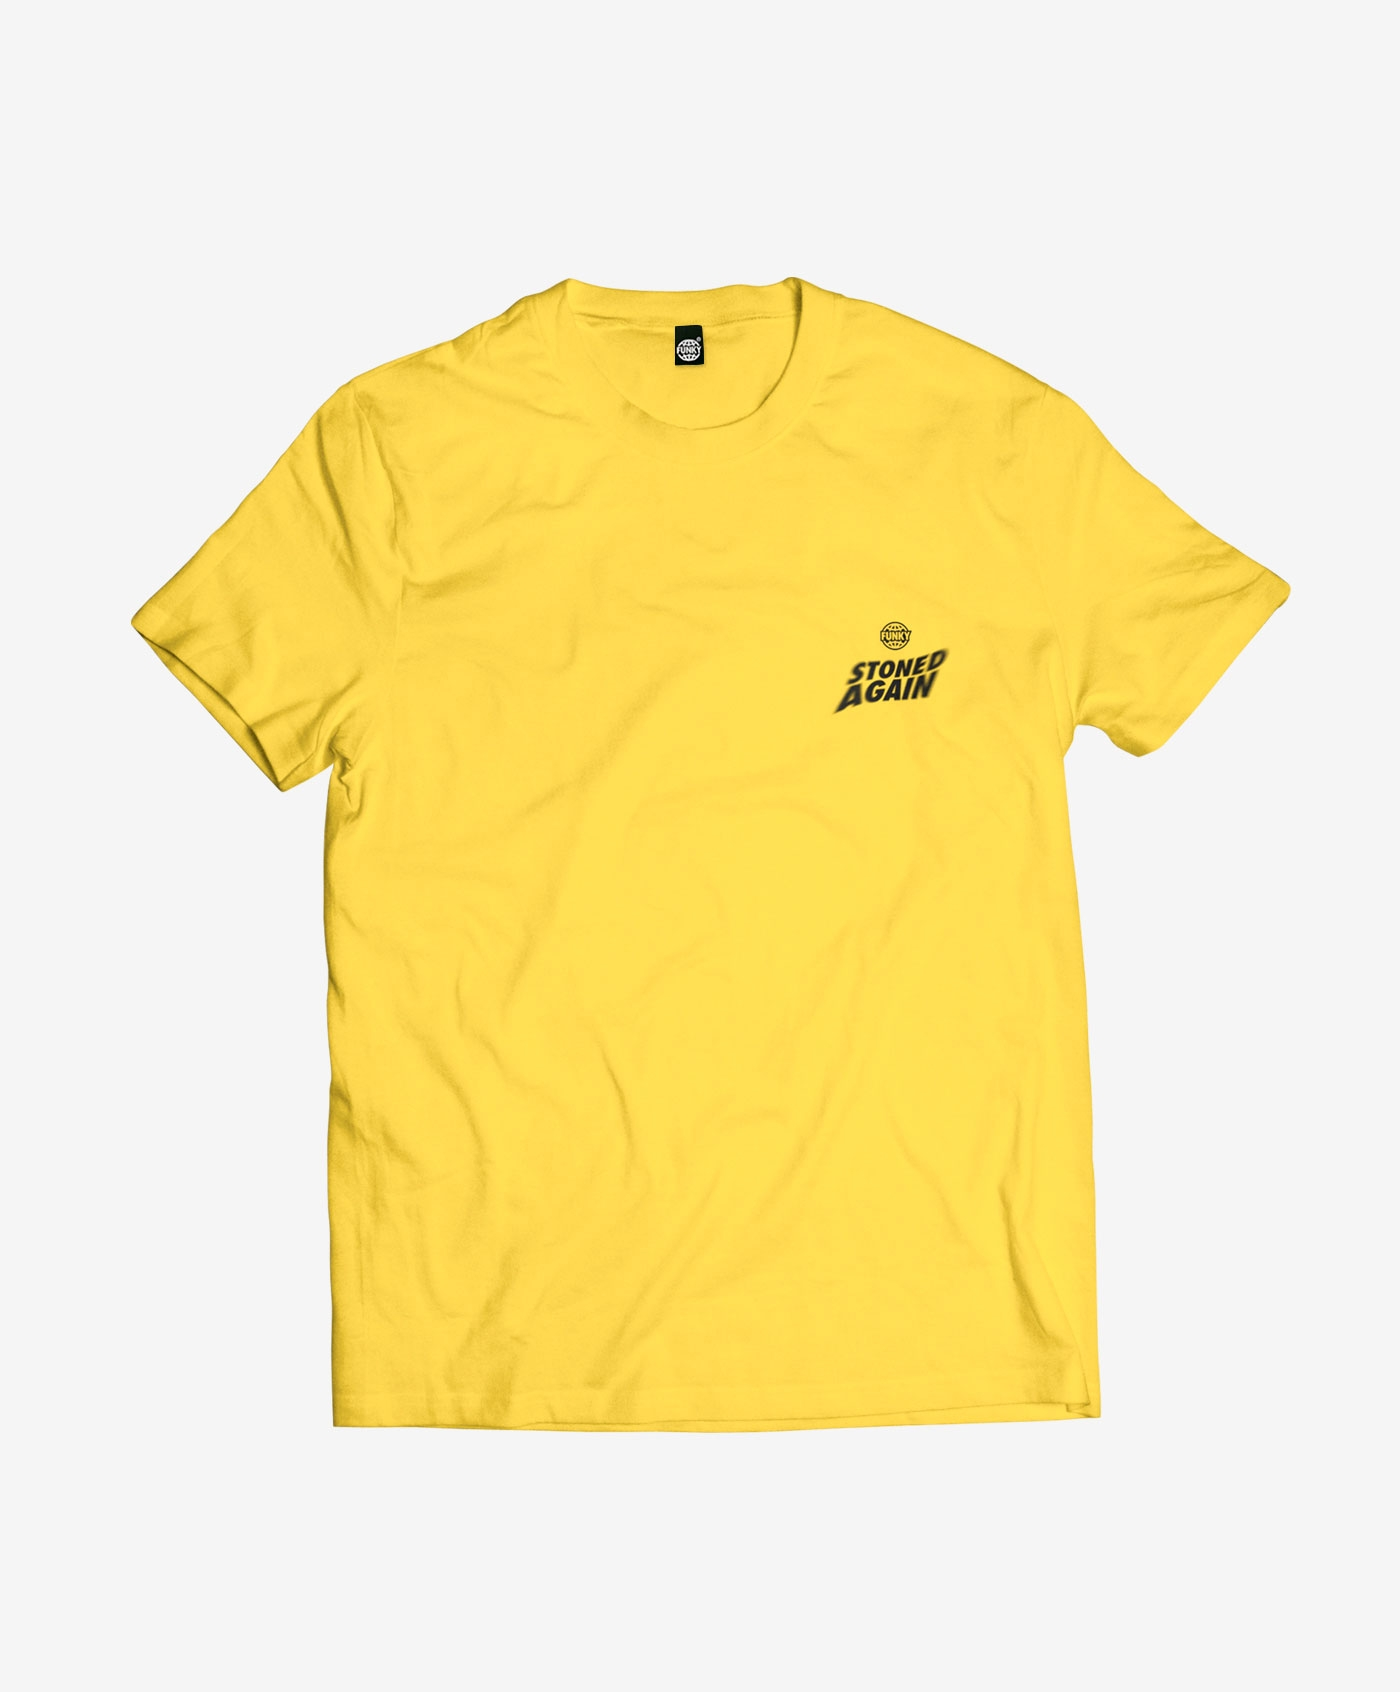 stoned-tee-front-yellow